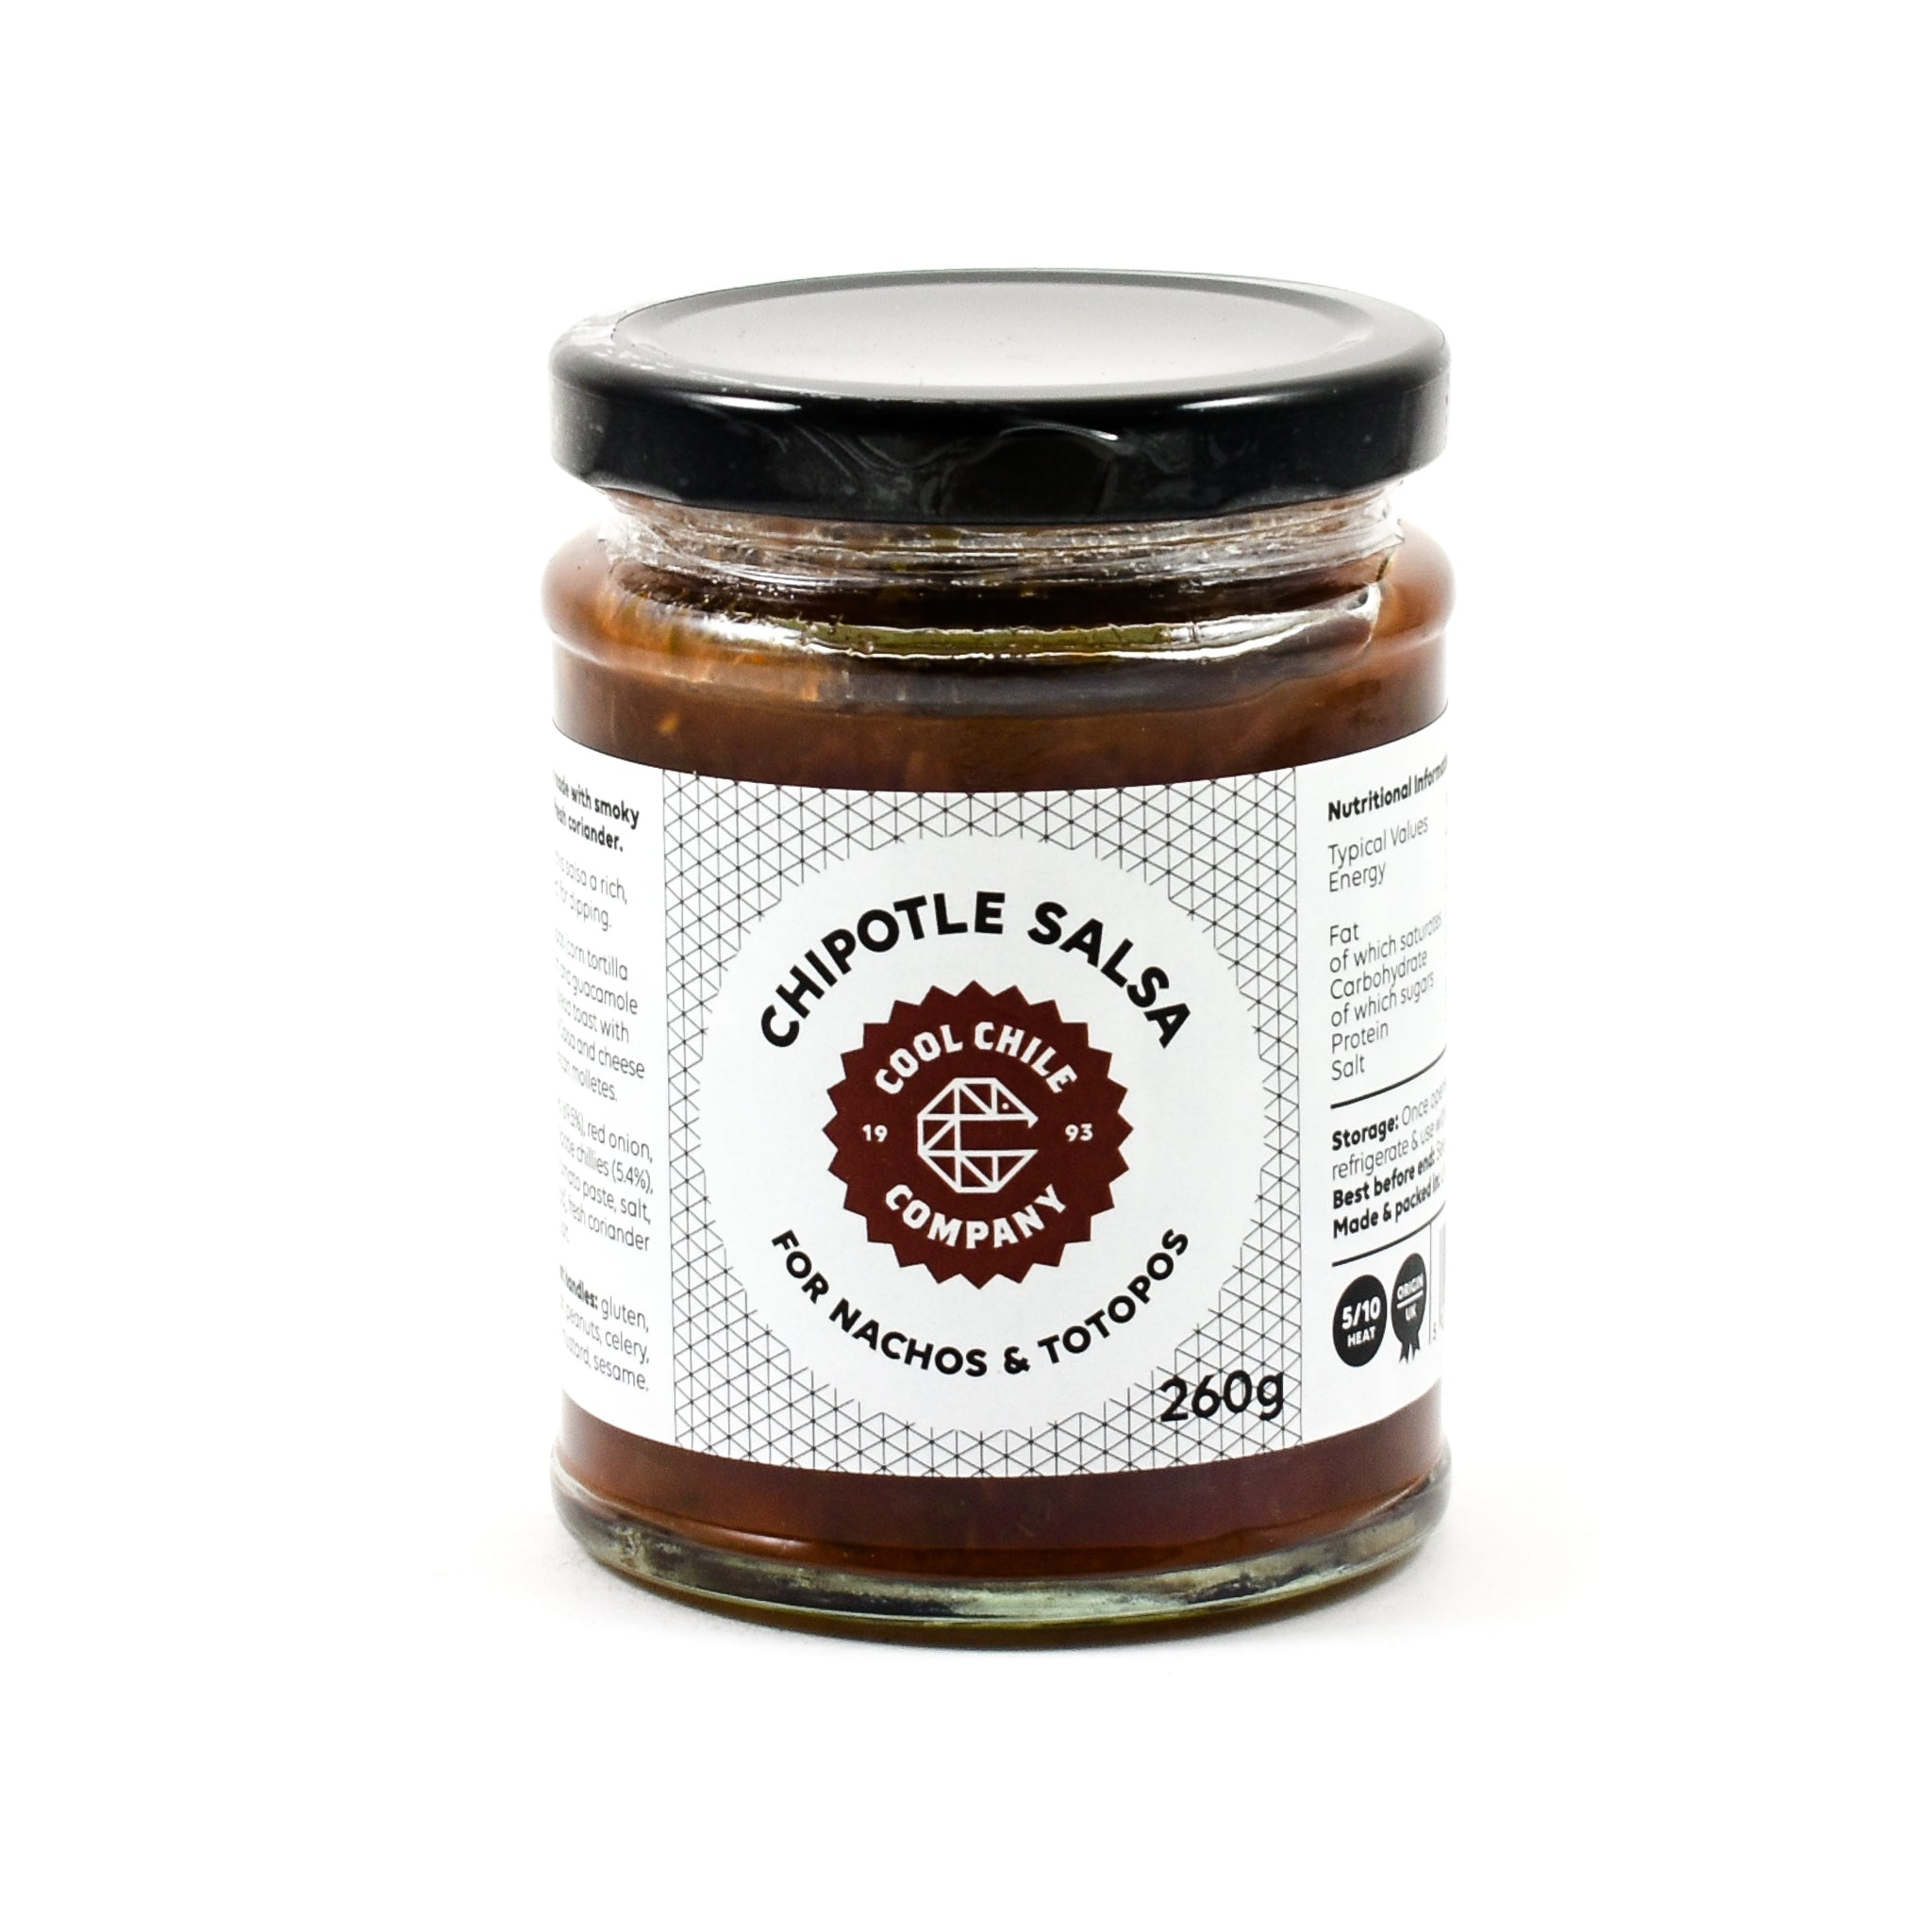 Cool Chile Co Chipotle Salsa 260g Ingredients Sauces & Condiments American Sauces & Condiments